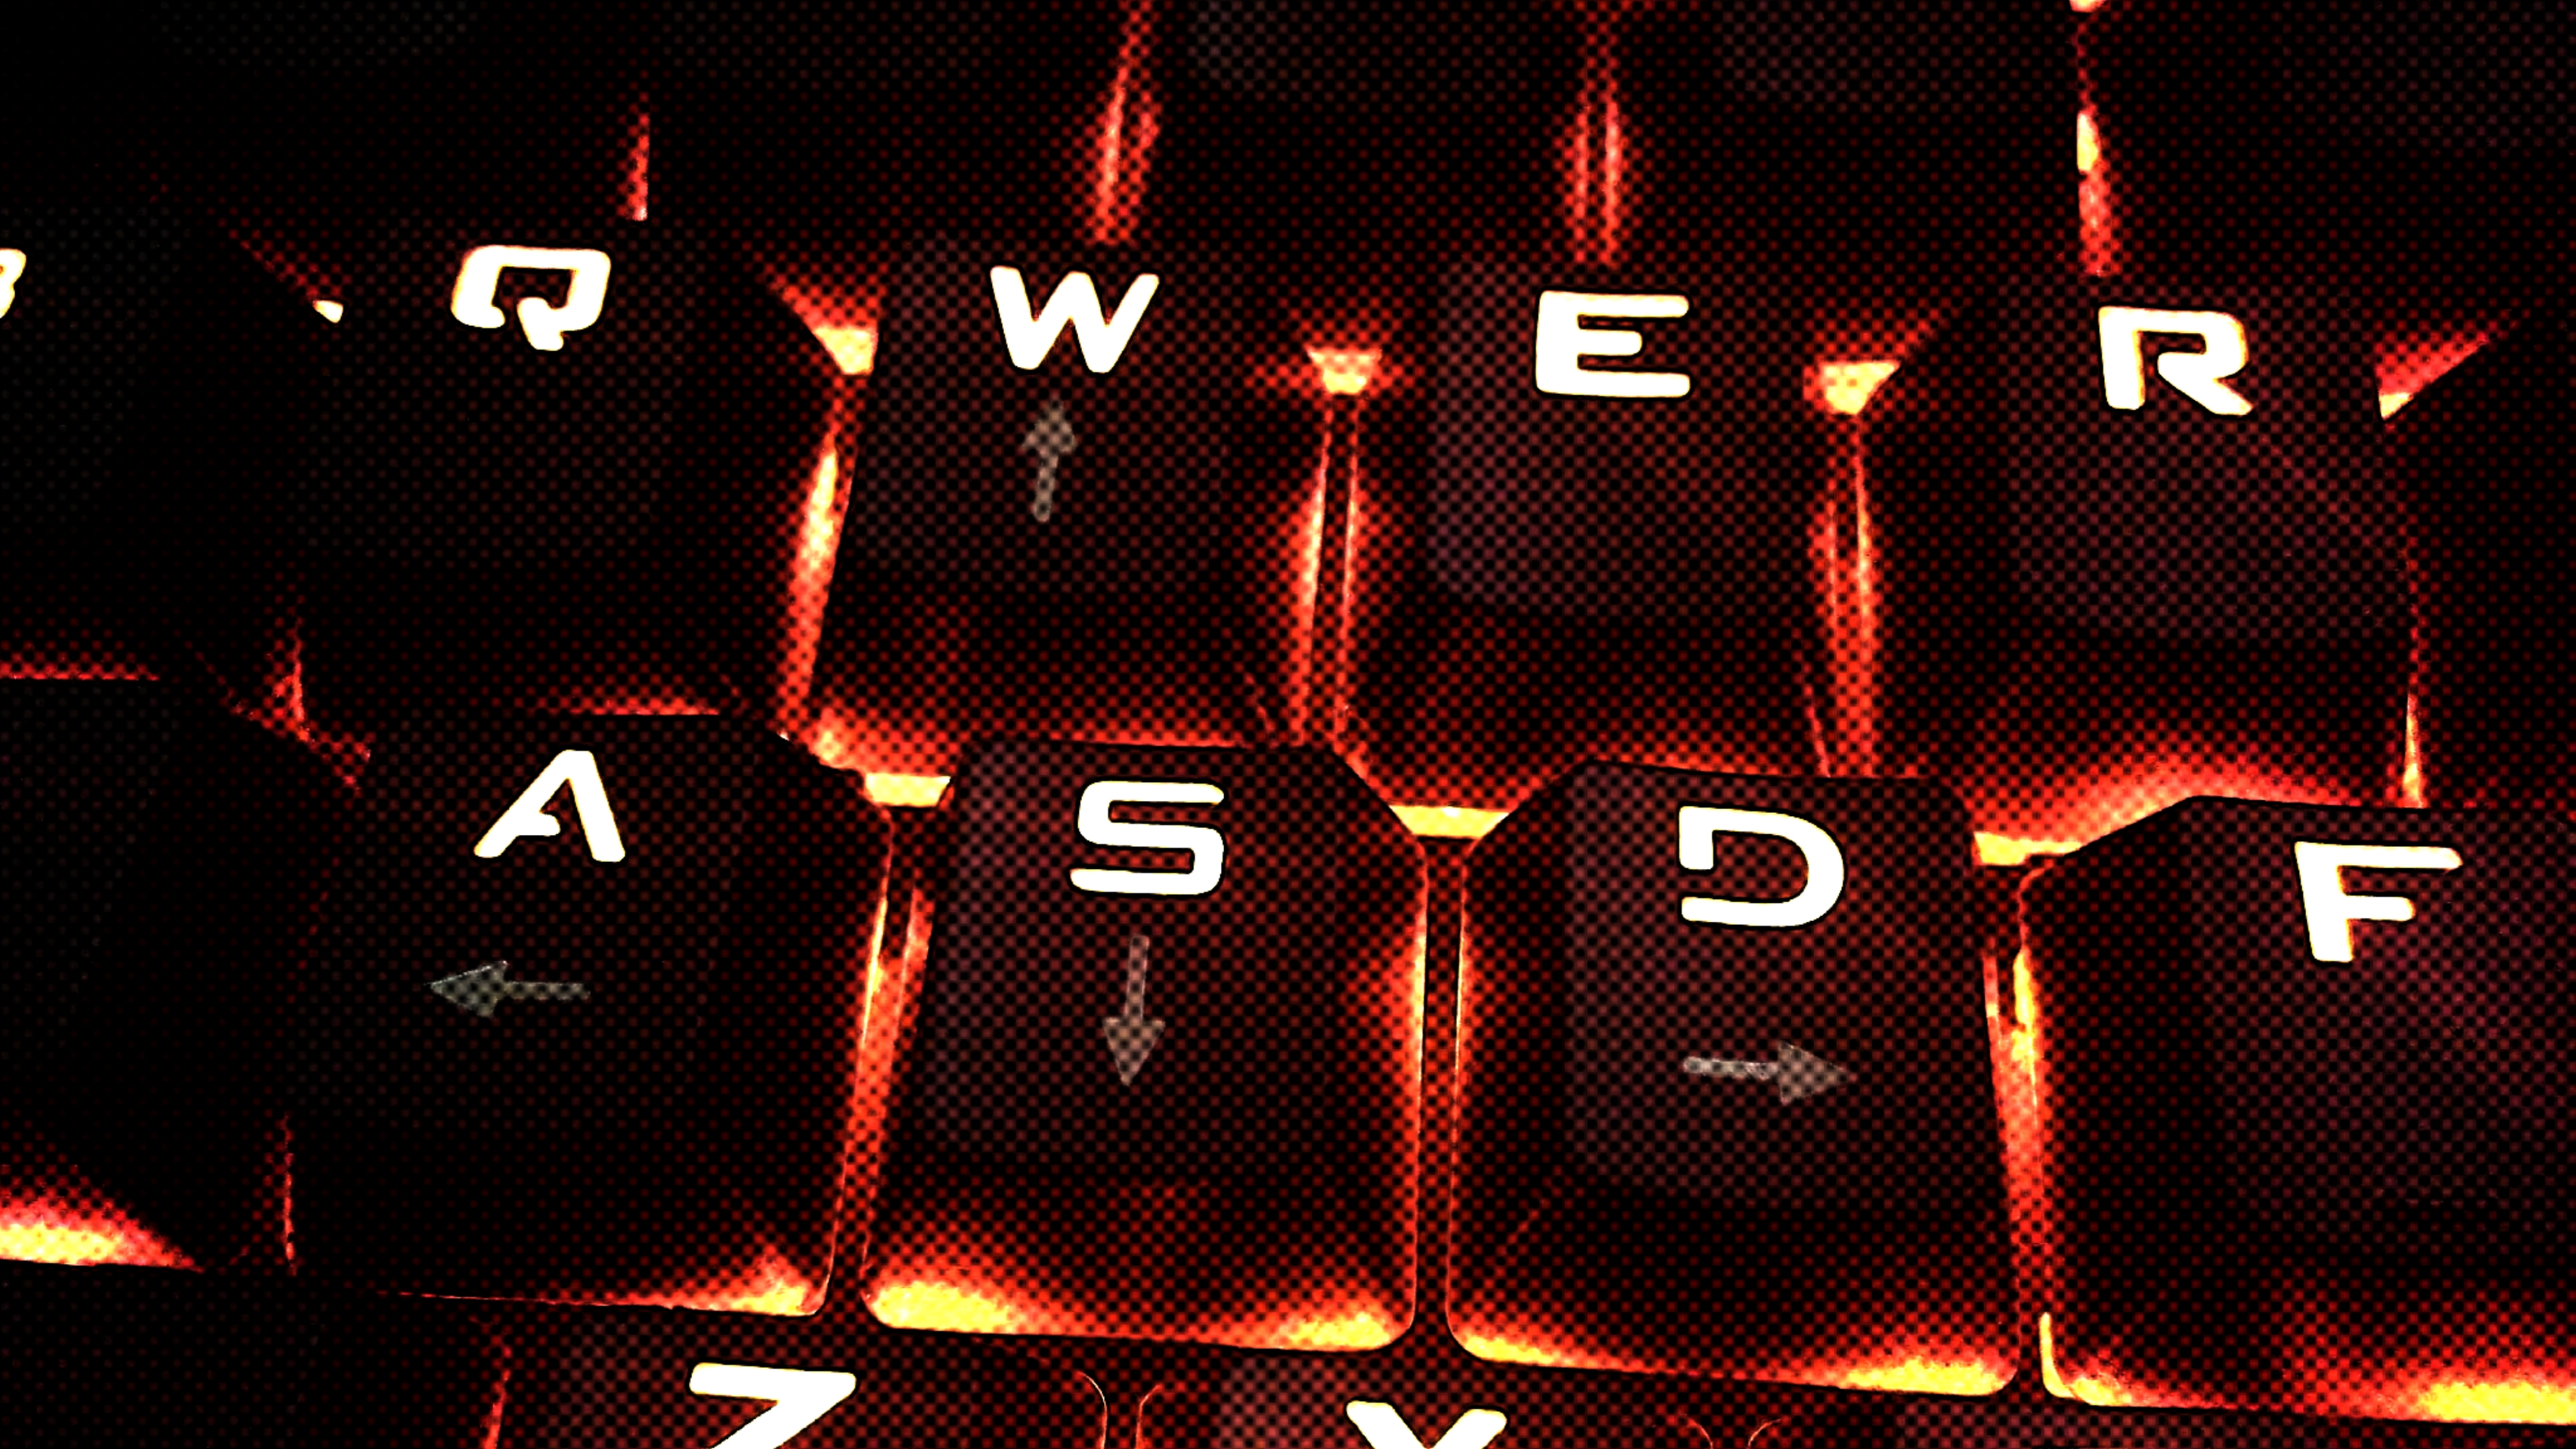 Backlit keyboard wasd by ss grenade909 on deviantart backlit keyboard wasd by ss grenade909 biocorpaavc Images